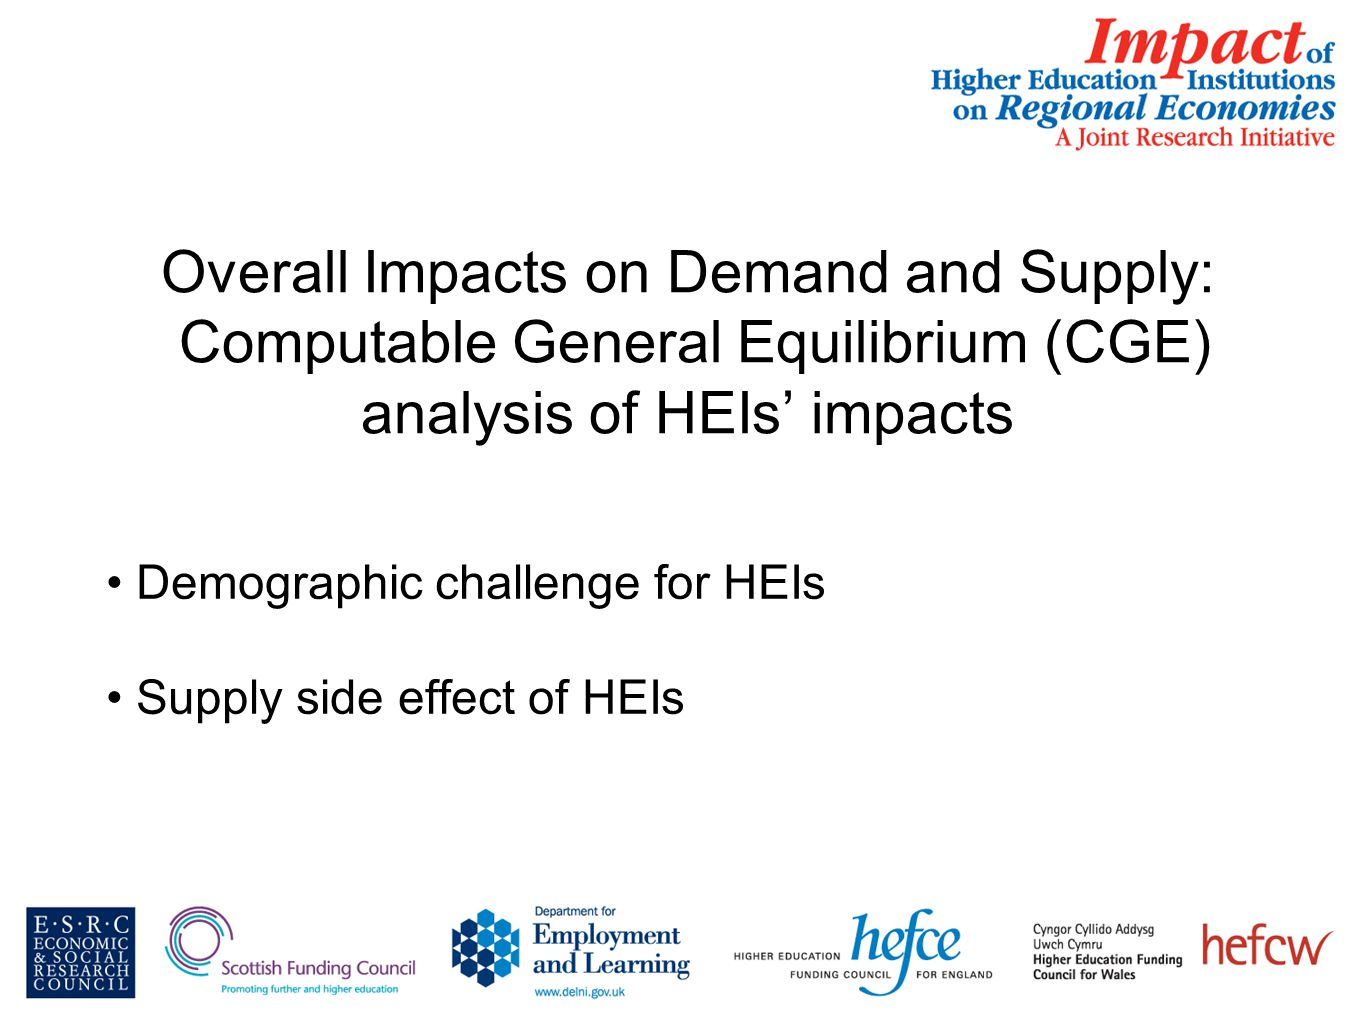 Overall Impacts on Demand and Supply: Computable General Equilibrium (CGE) analysis of HEIs' impacts Demographic challenge for HEIs Supply side effect of HEIs